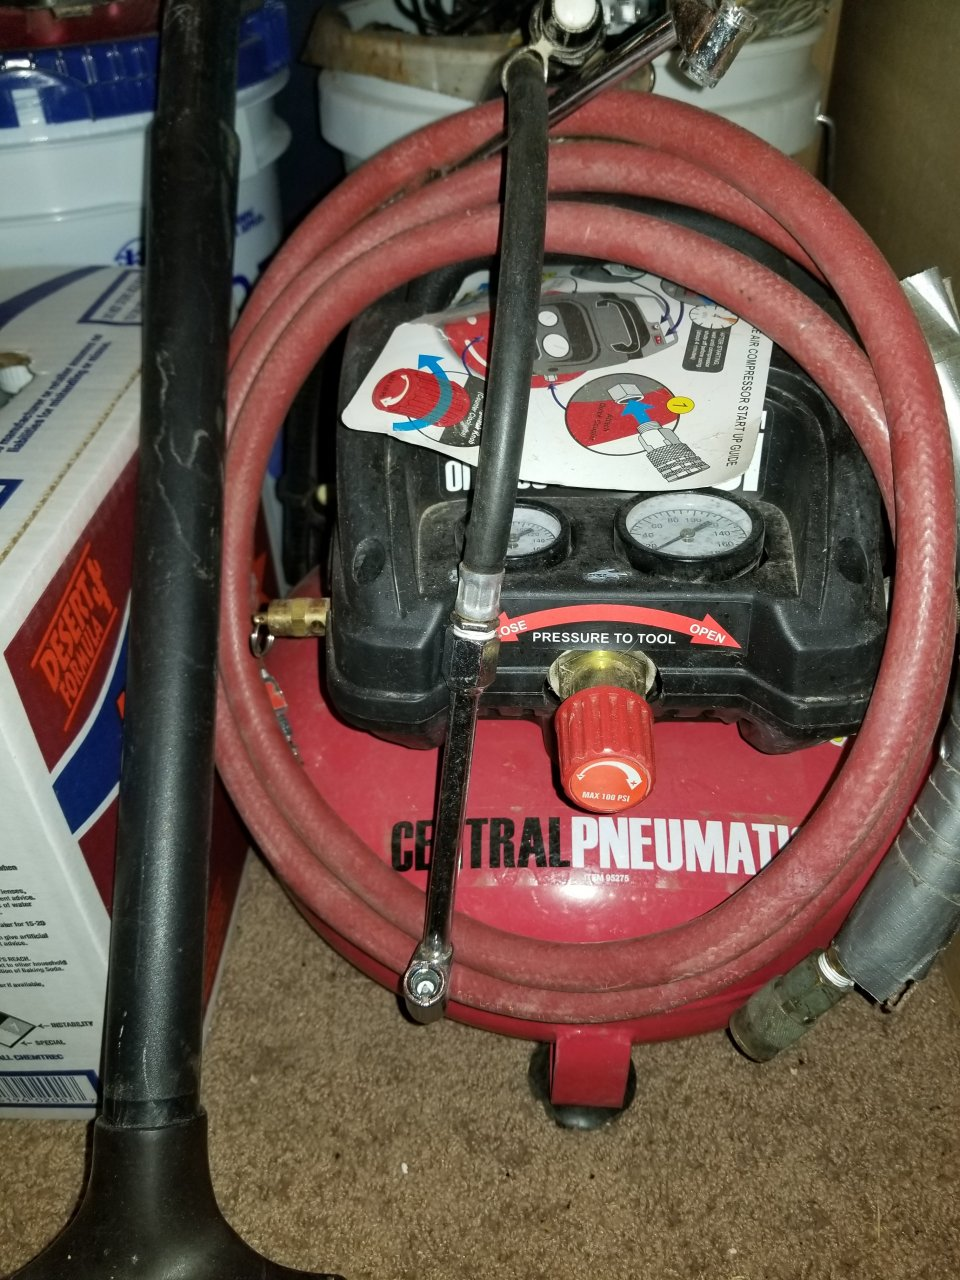 medium resolution of where is the fuse on the 3 gallon pancake compressor purchased at harbor freight